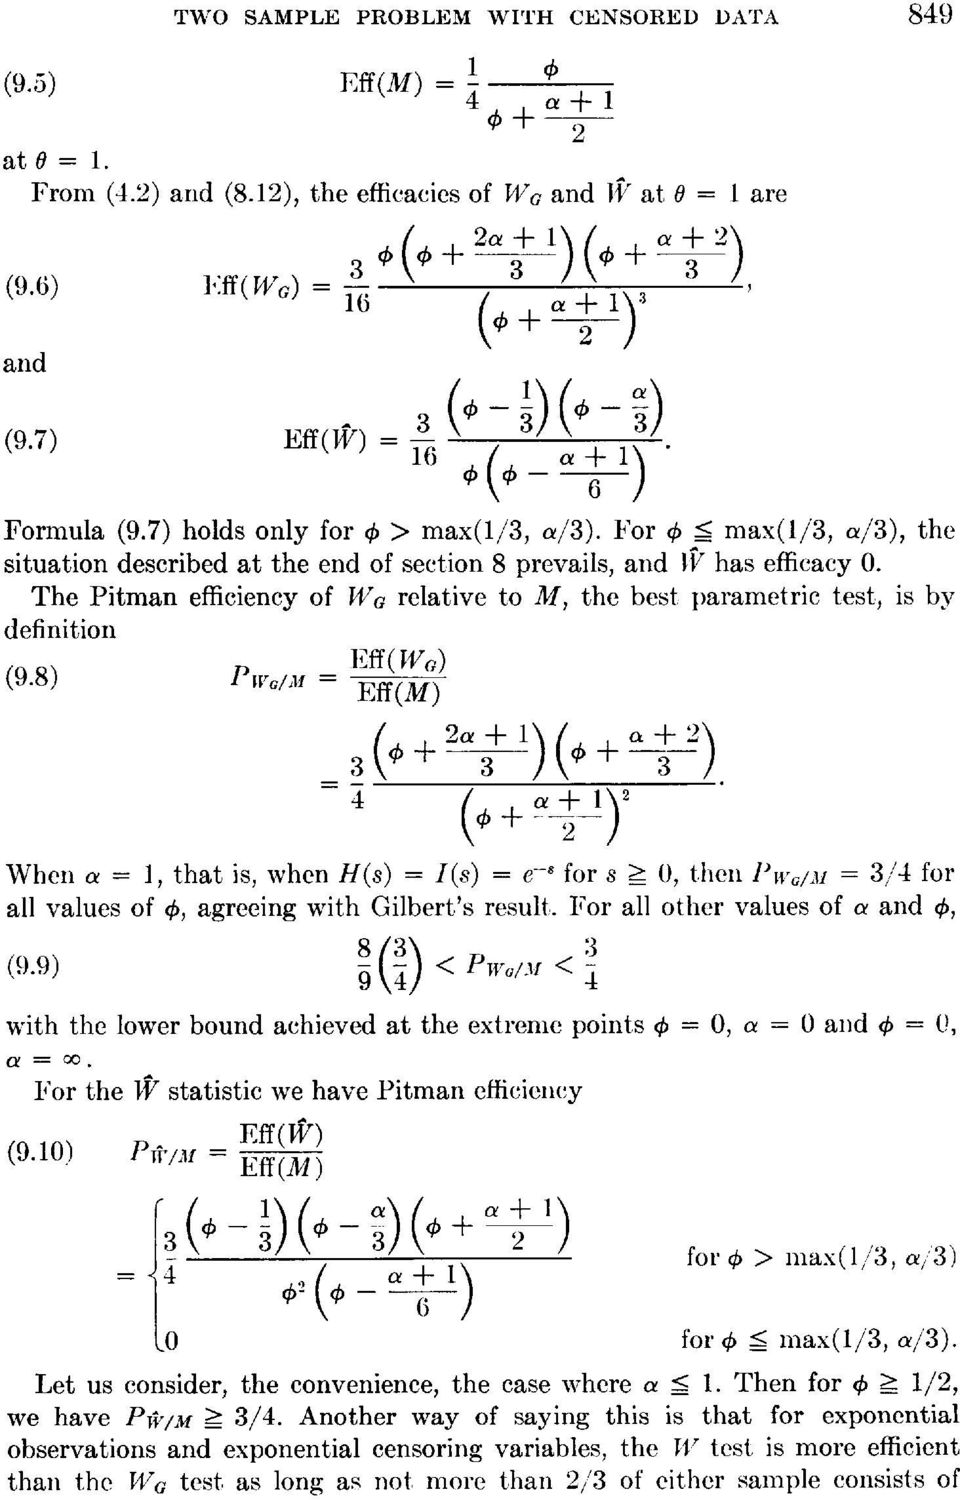 The Pitman efficiency of WG relative to M, the best parametric test, is by definition (9.